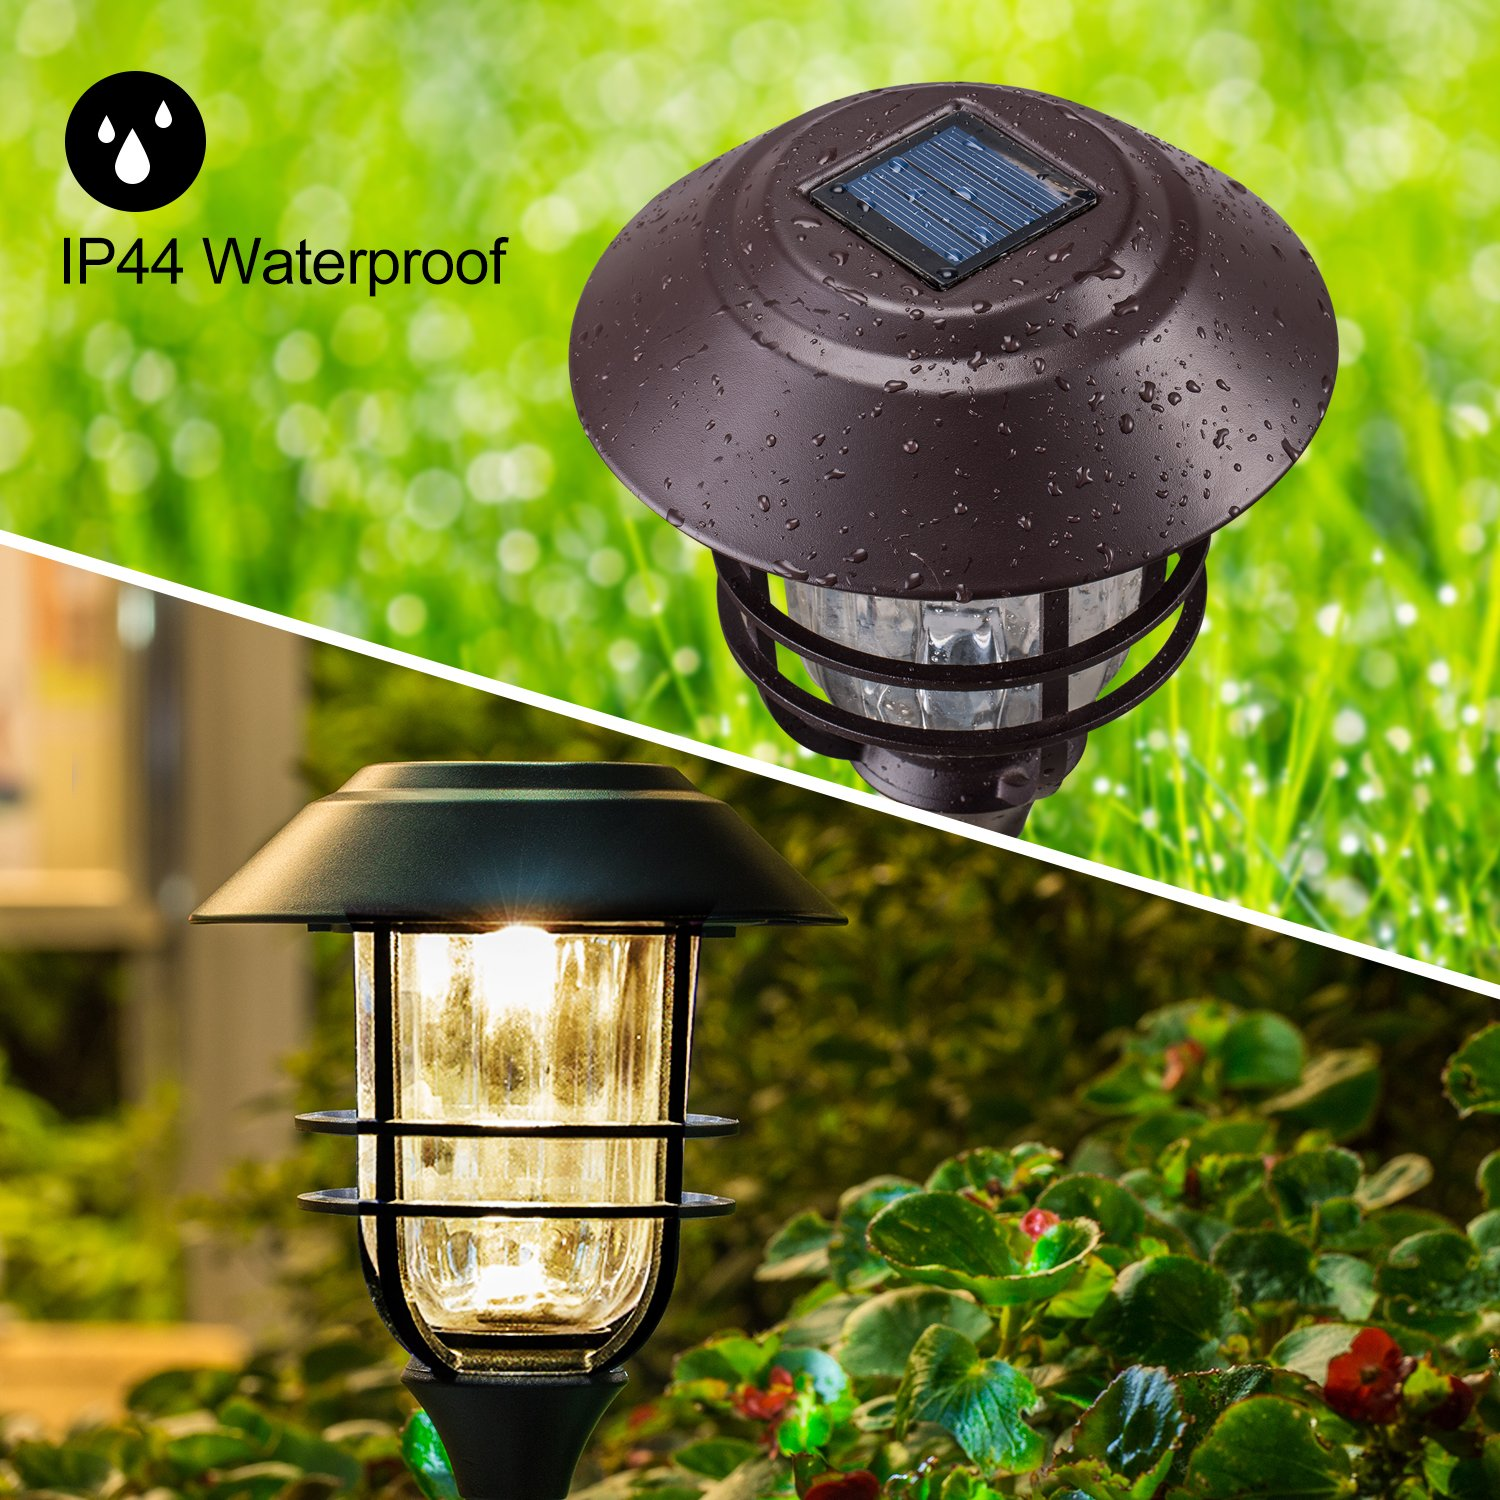 Solar Lights Outdoor Pathway - 4 Pack Bright Glass Solar Powered LED Garden Path Landscape Lighting Bronze Powder Coated Die Casting Aluminum Patio Path Lights Heavy-Duty for All Weather (Bronze) by Sunwind (Image #5)